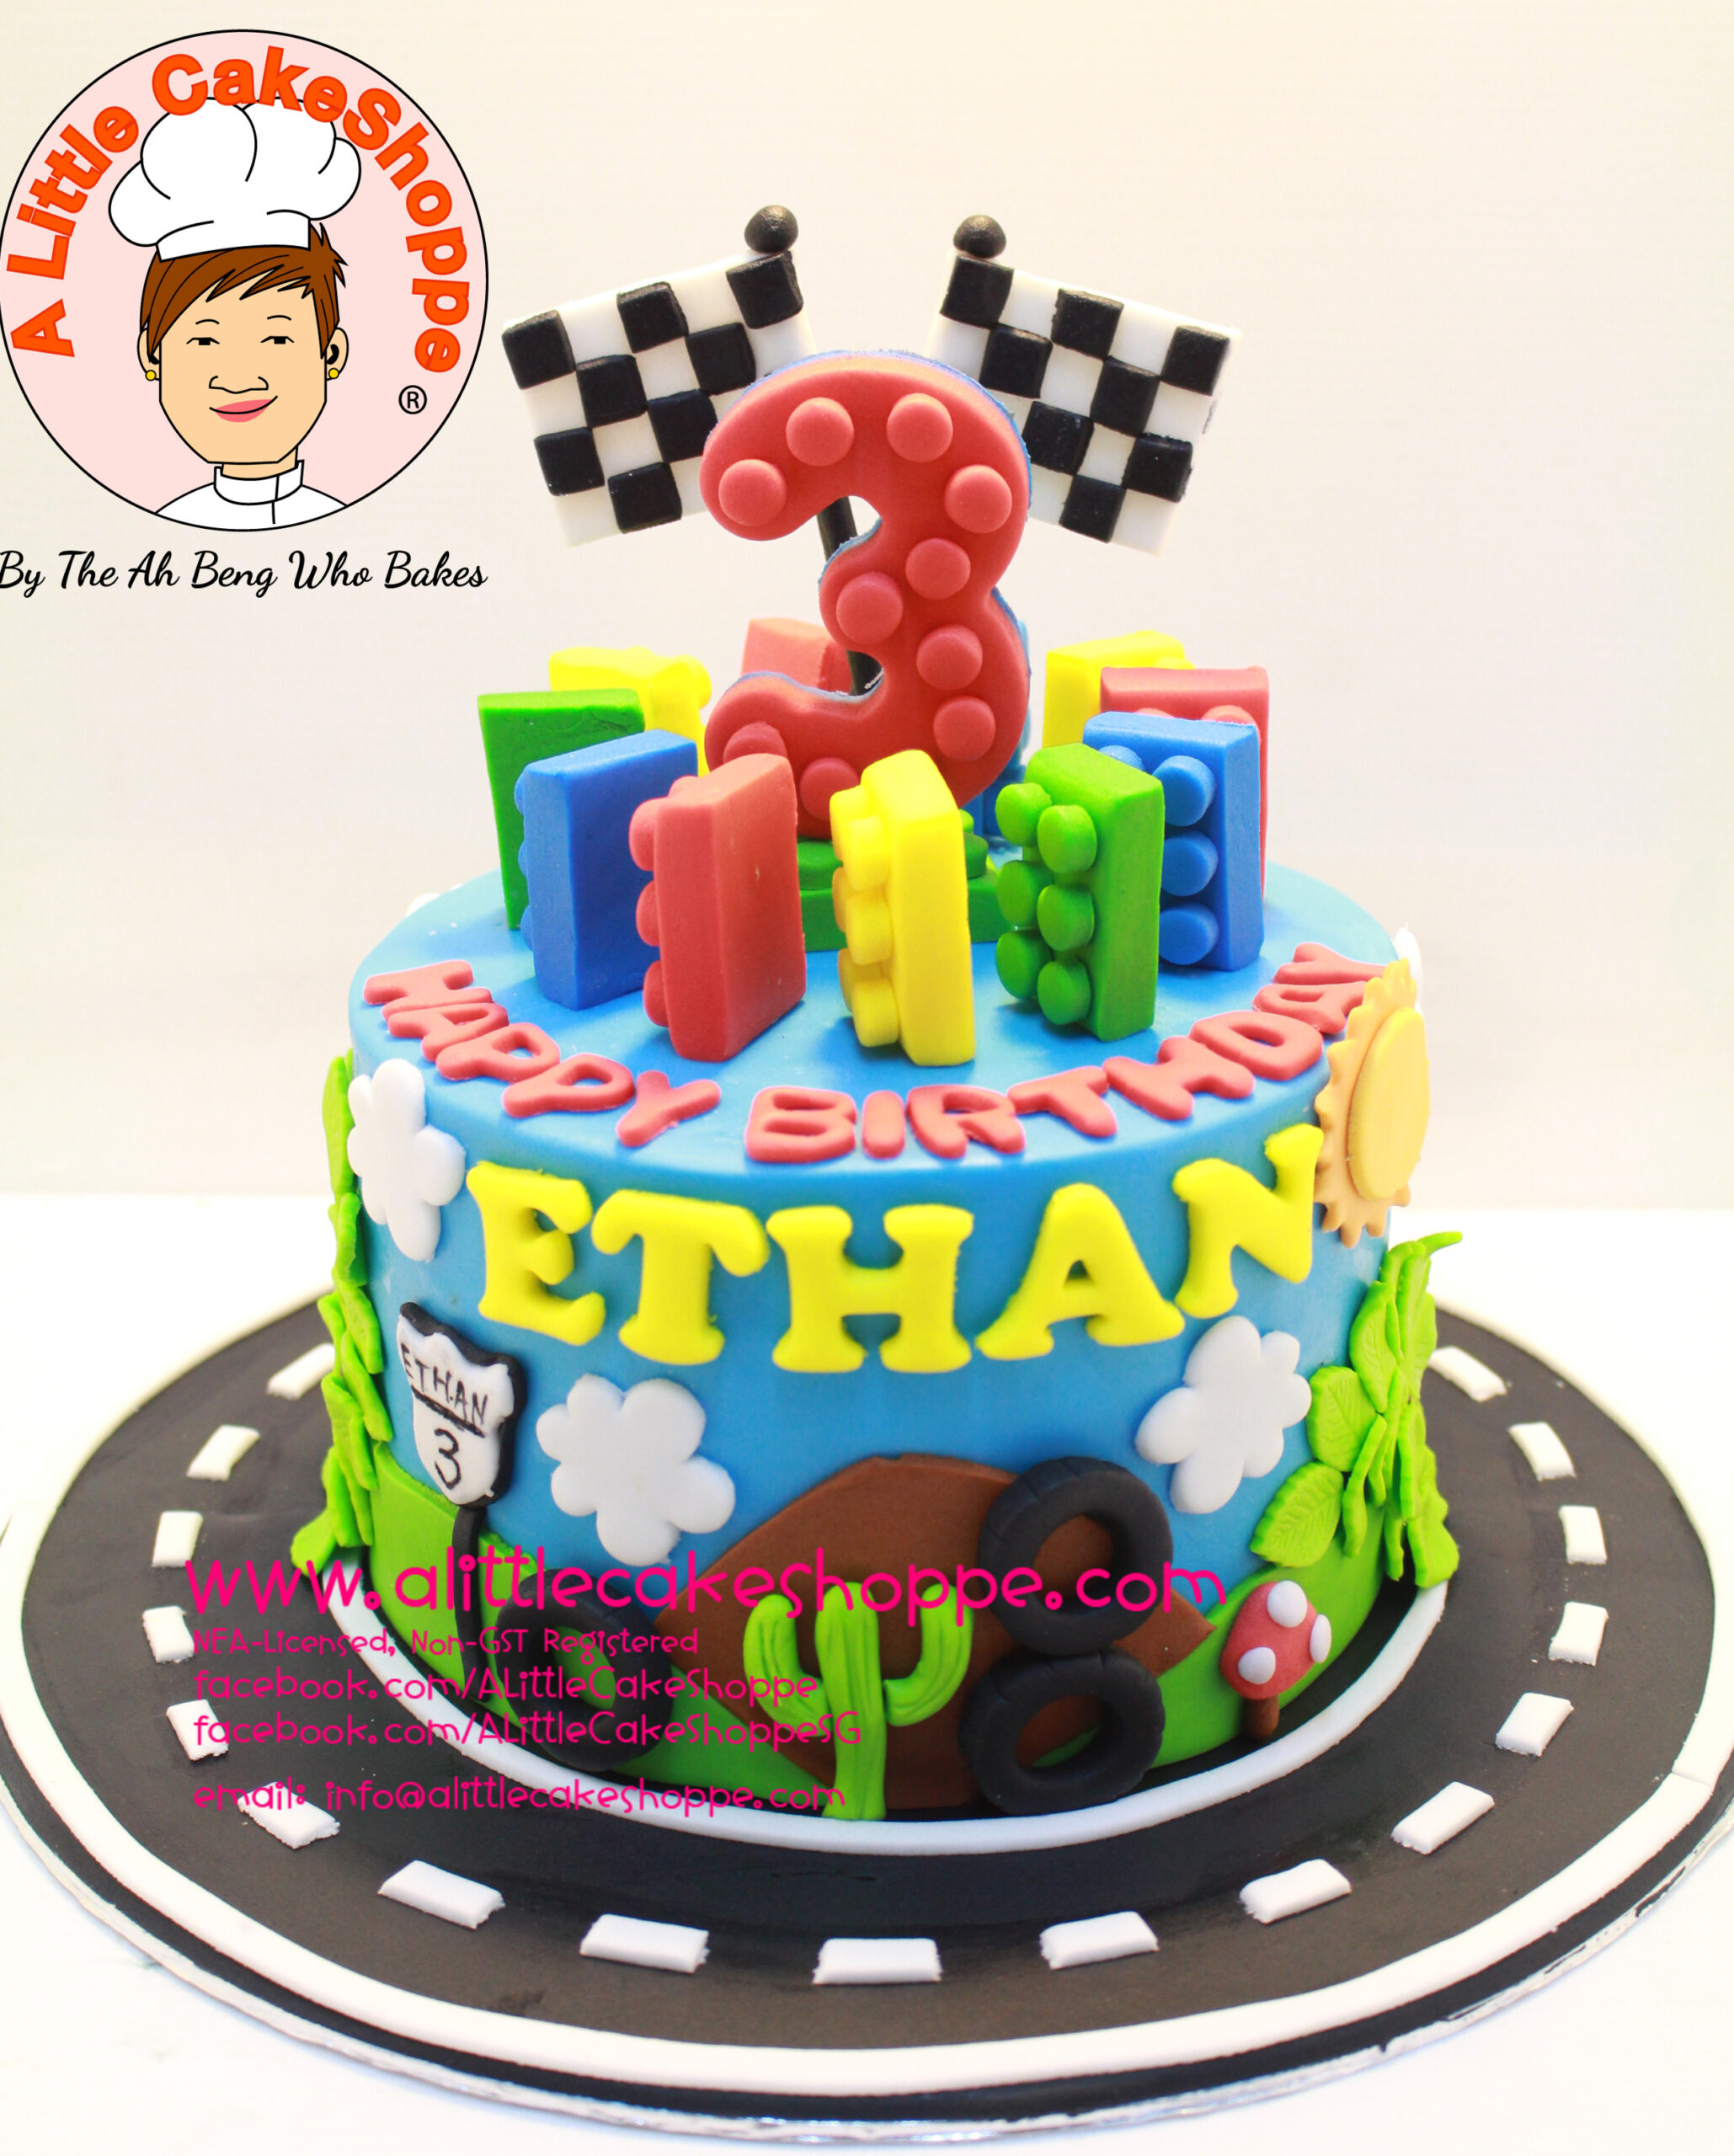 Best Customised Cake Shop Singapore custom cake 2D 3D birthday cake cupcakes desserts wedding corporate events anniversary 1st birthday 21st birthday fondant fresh cream buttercream cakes alittlecakeshoppe a little cake shoppe compliments review singapore bakers SG cake shop cakeshop ah beng who bakes lego car